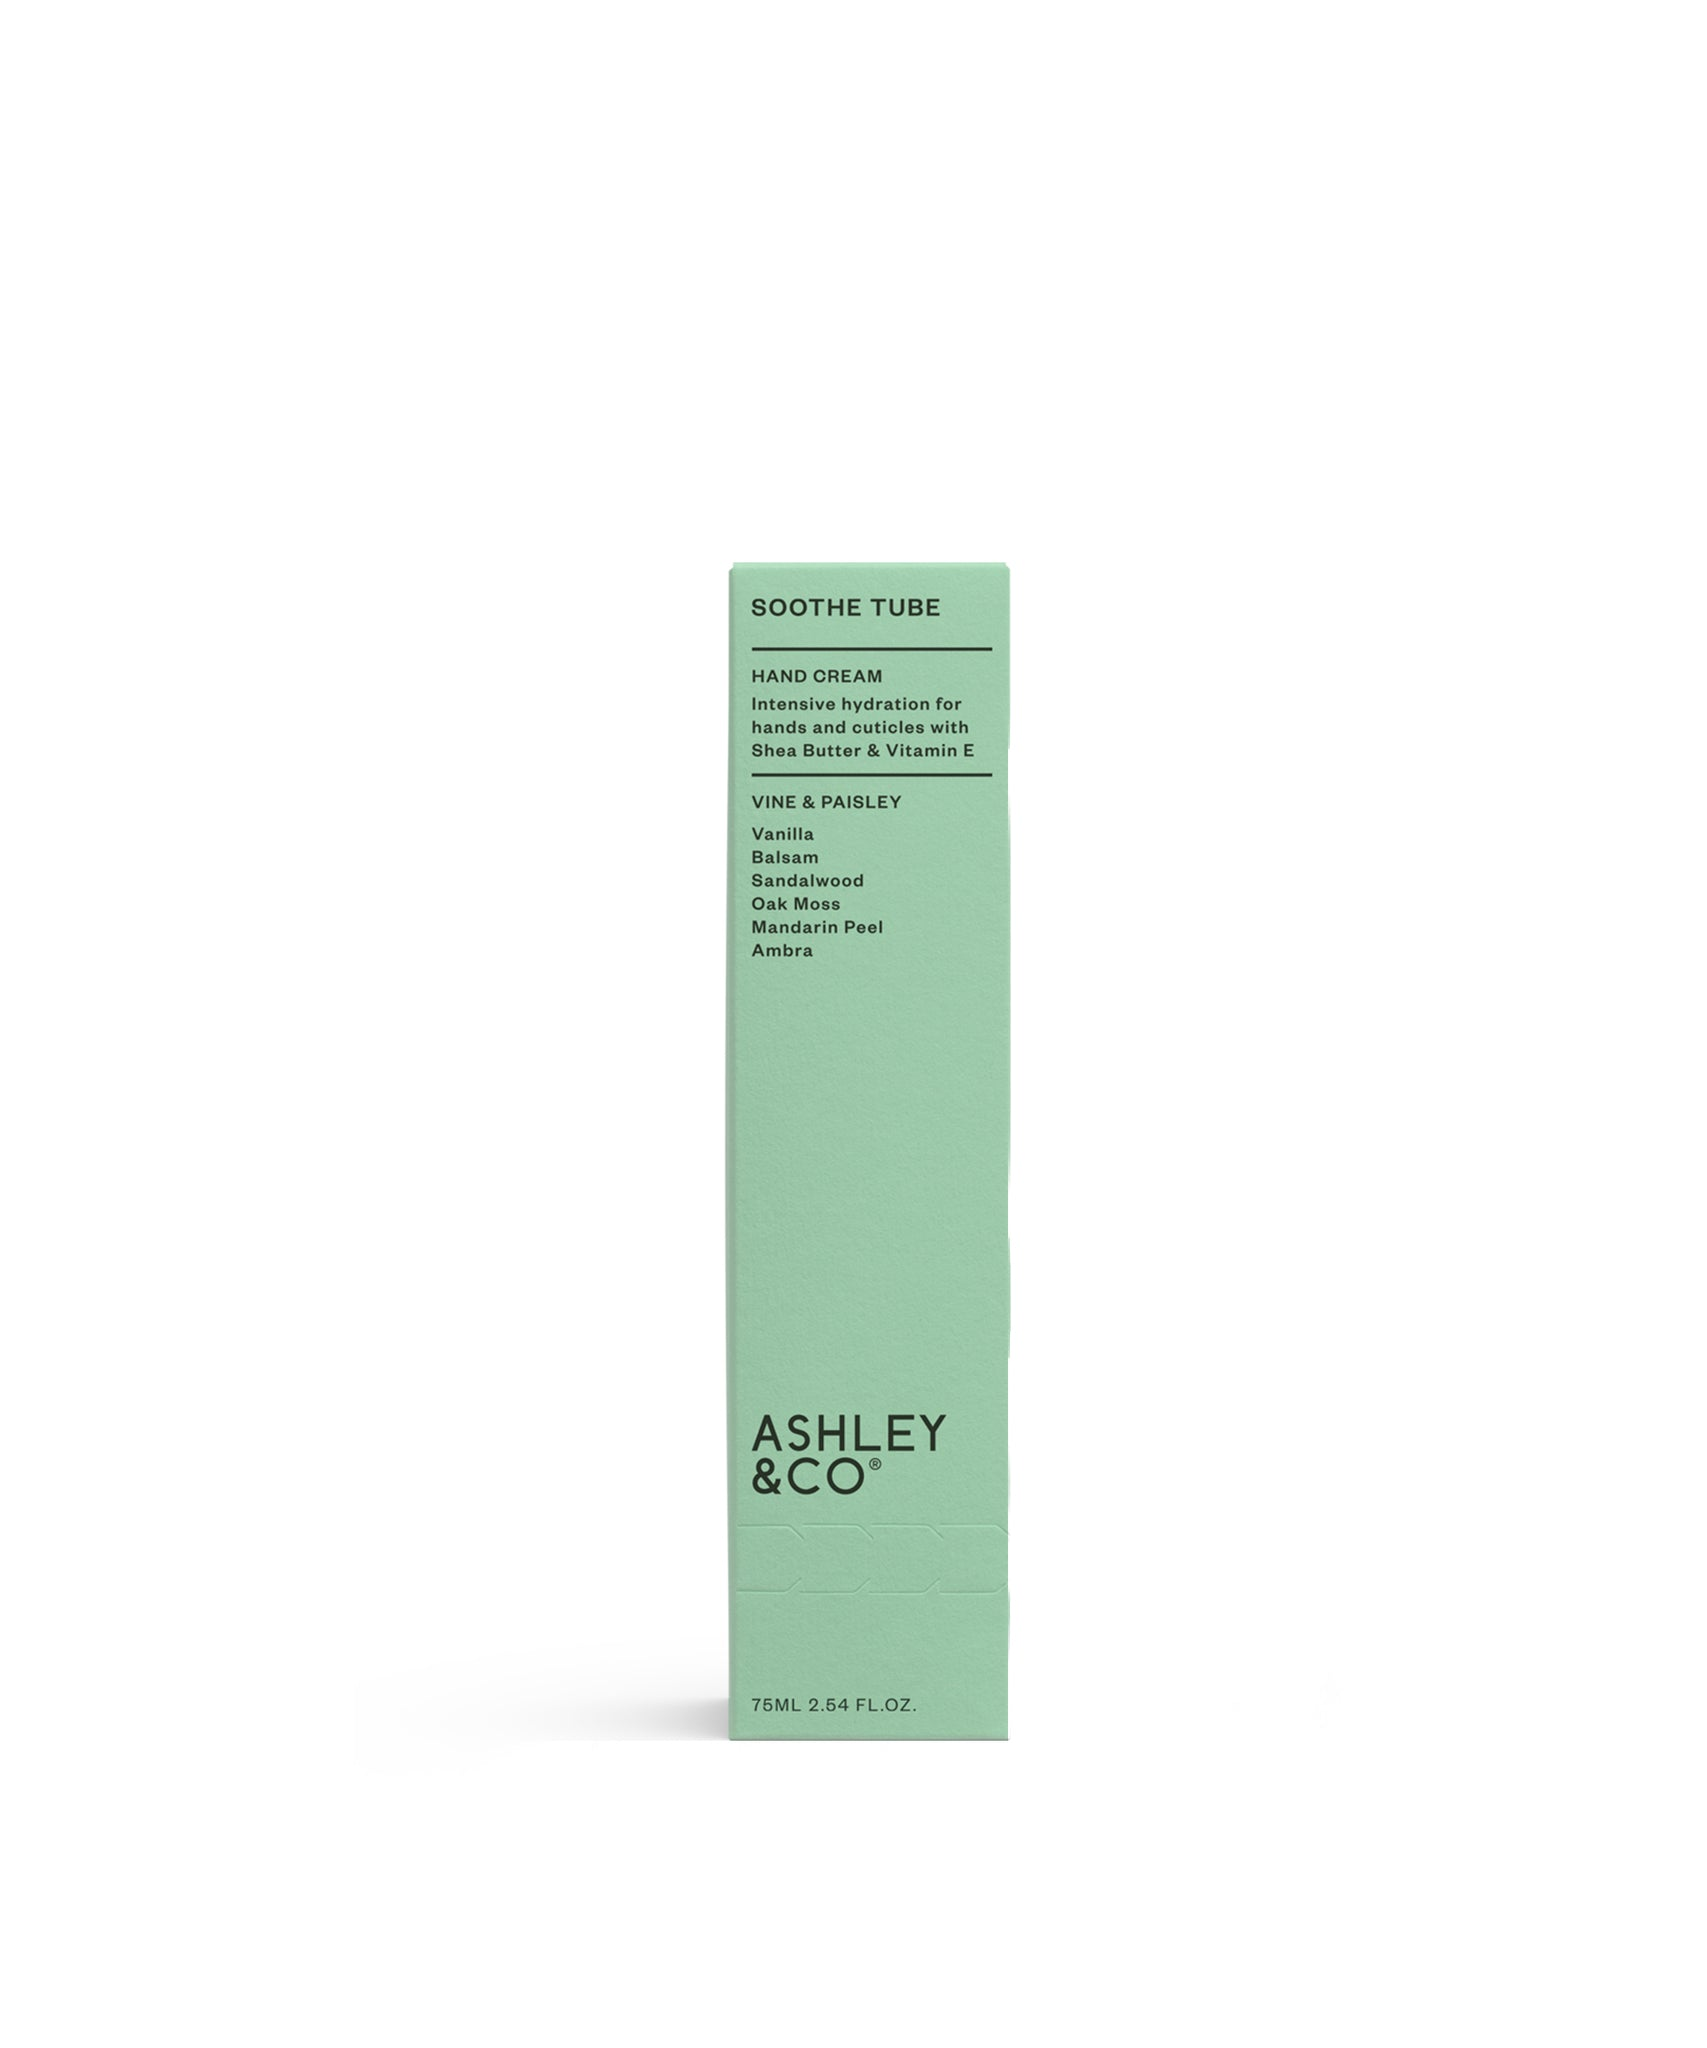 Vine & Paisley Soothe Tube by Ashley & Co.